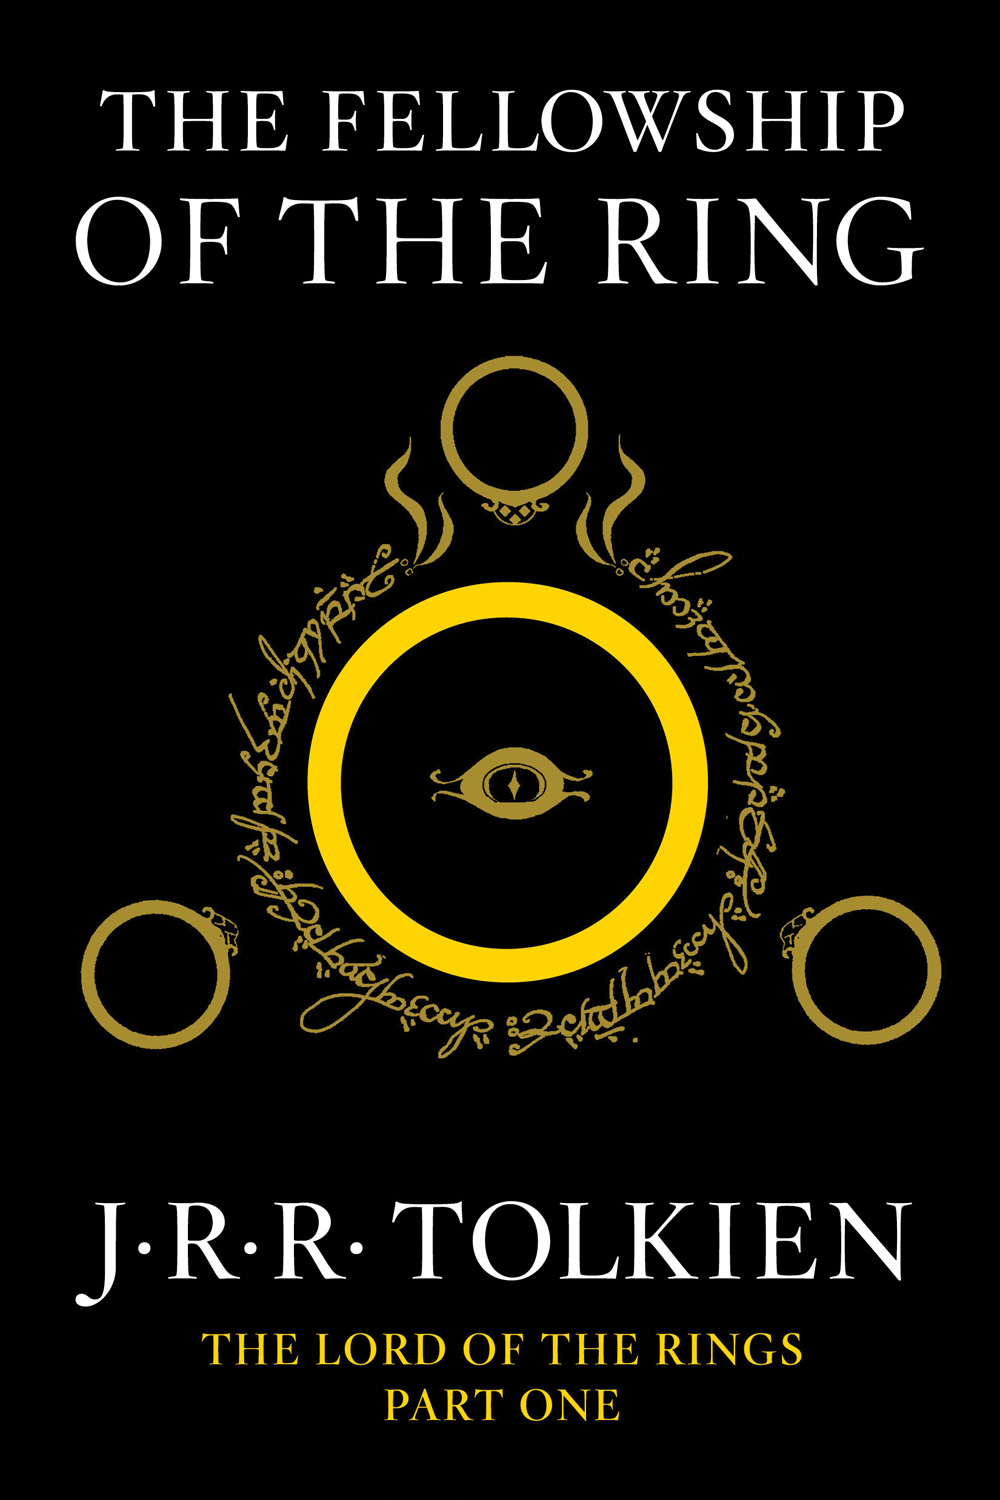 The Lord of the Rings, by J.R.R. Tolkien                               I actually go back and forth between The Hobbit and the Lord of the Rings, which one I prefer: there's something very appealing about the moral grubbiness of The Hobbit, with its gold-digging dwarfs. But in the end nothing can touch the depths of the Mines of Moria, or the heights of Weathertop and Mount Doom. Tolkien restored to us an entire lost mythology we didn't even know we were missing, and on some level the rest of us have just been filling in the gaps he left ever since.